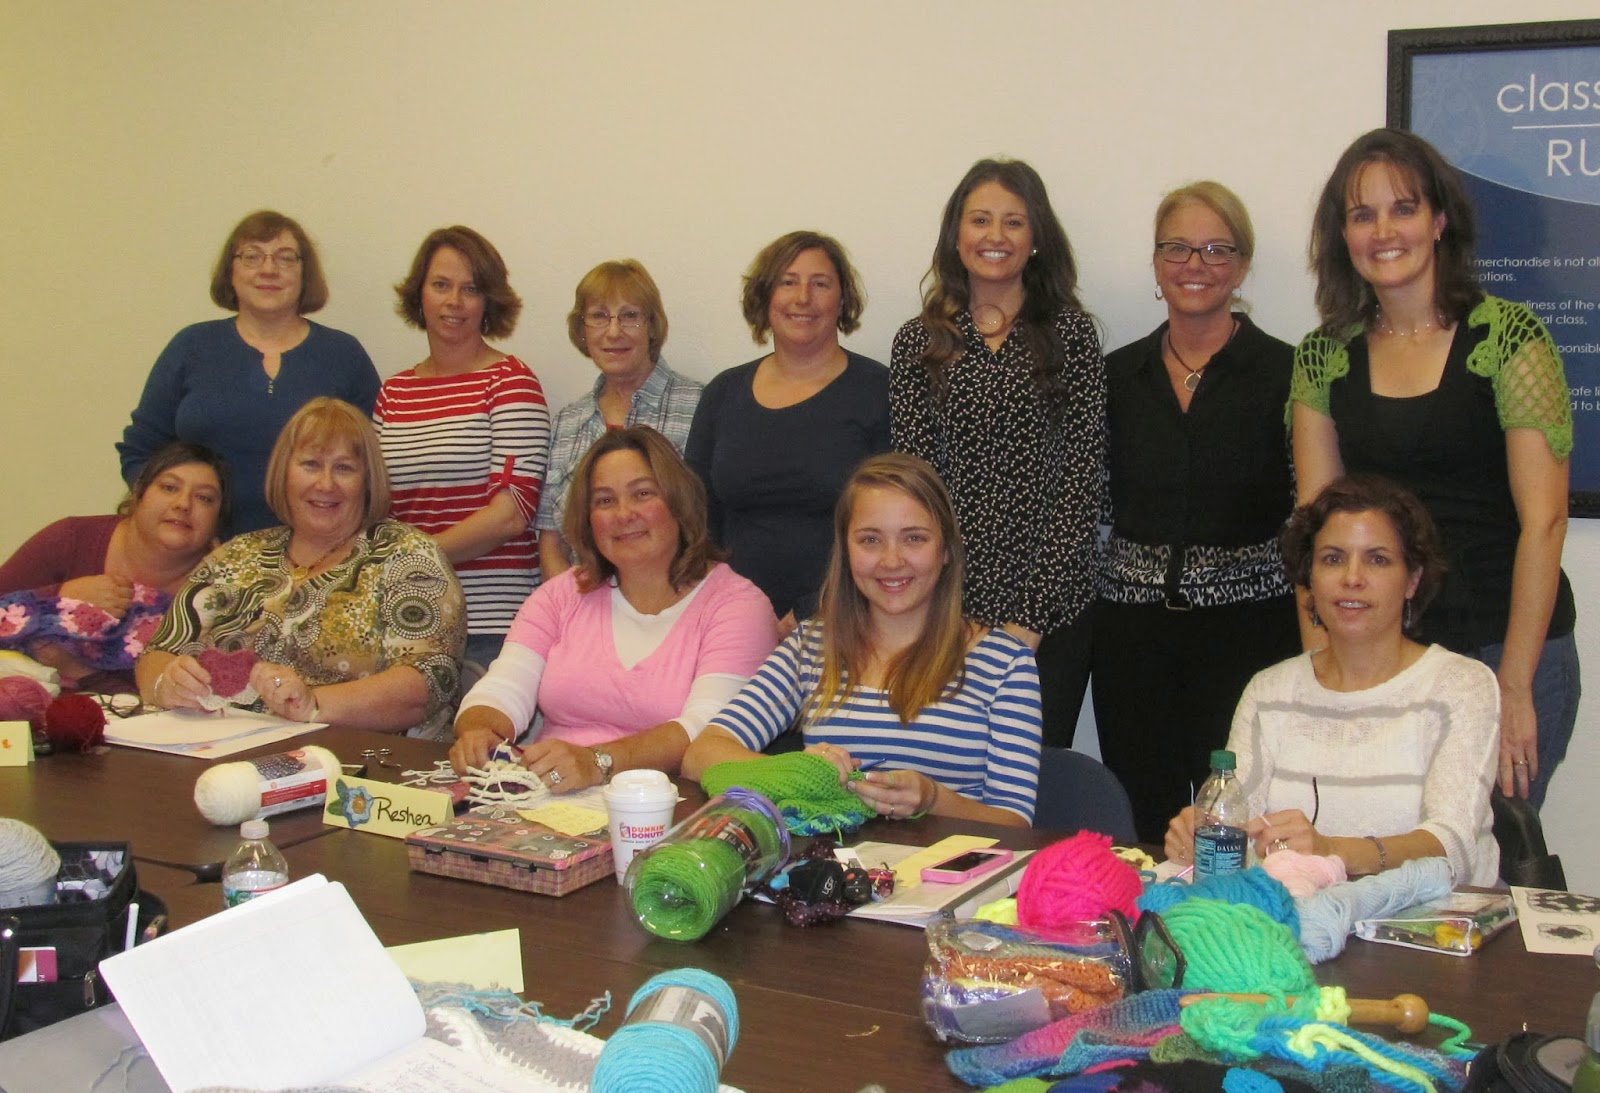 Crocheting Classes : Celtic Knot Crochet: Ladies Night Out Crochet Class